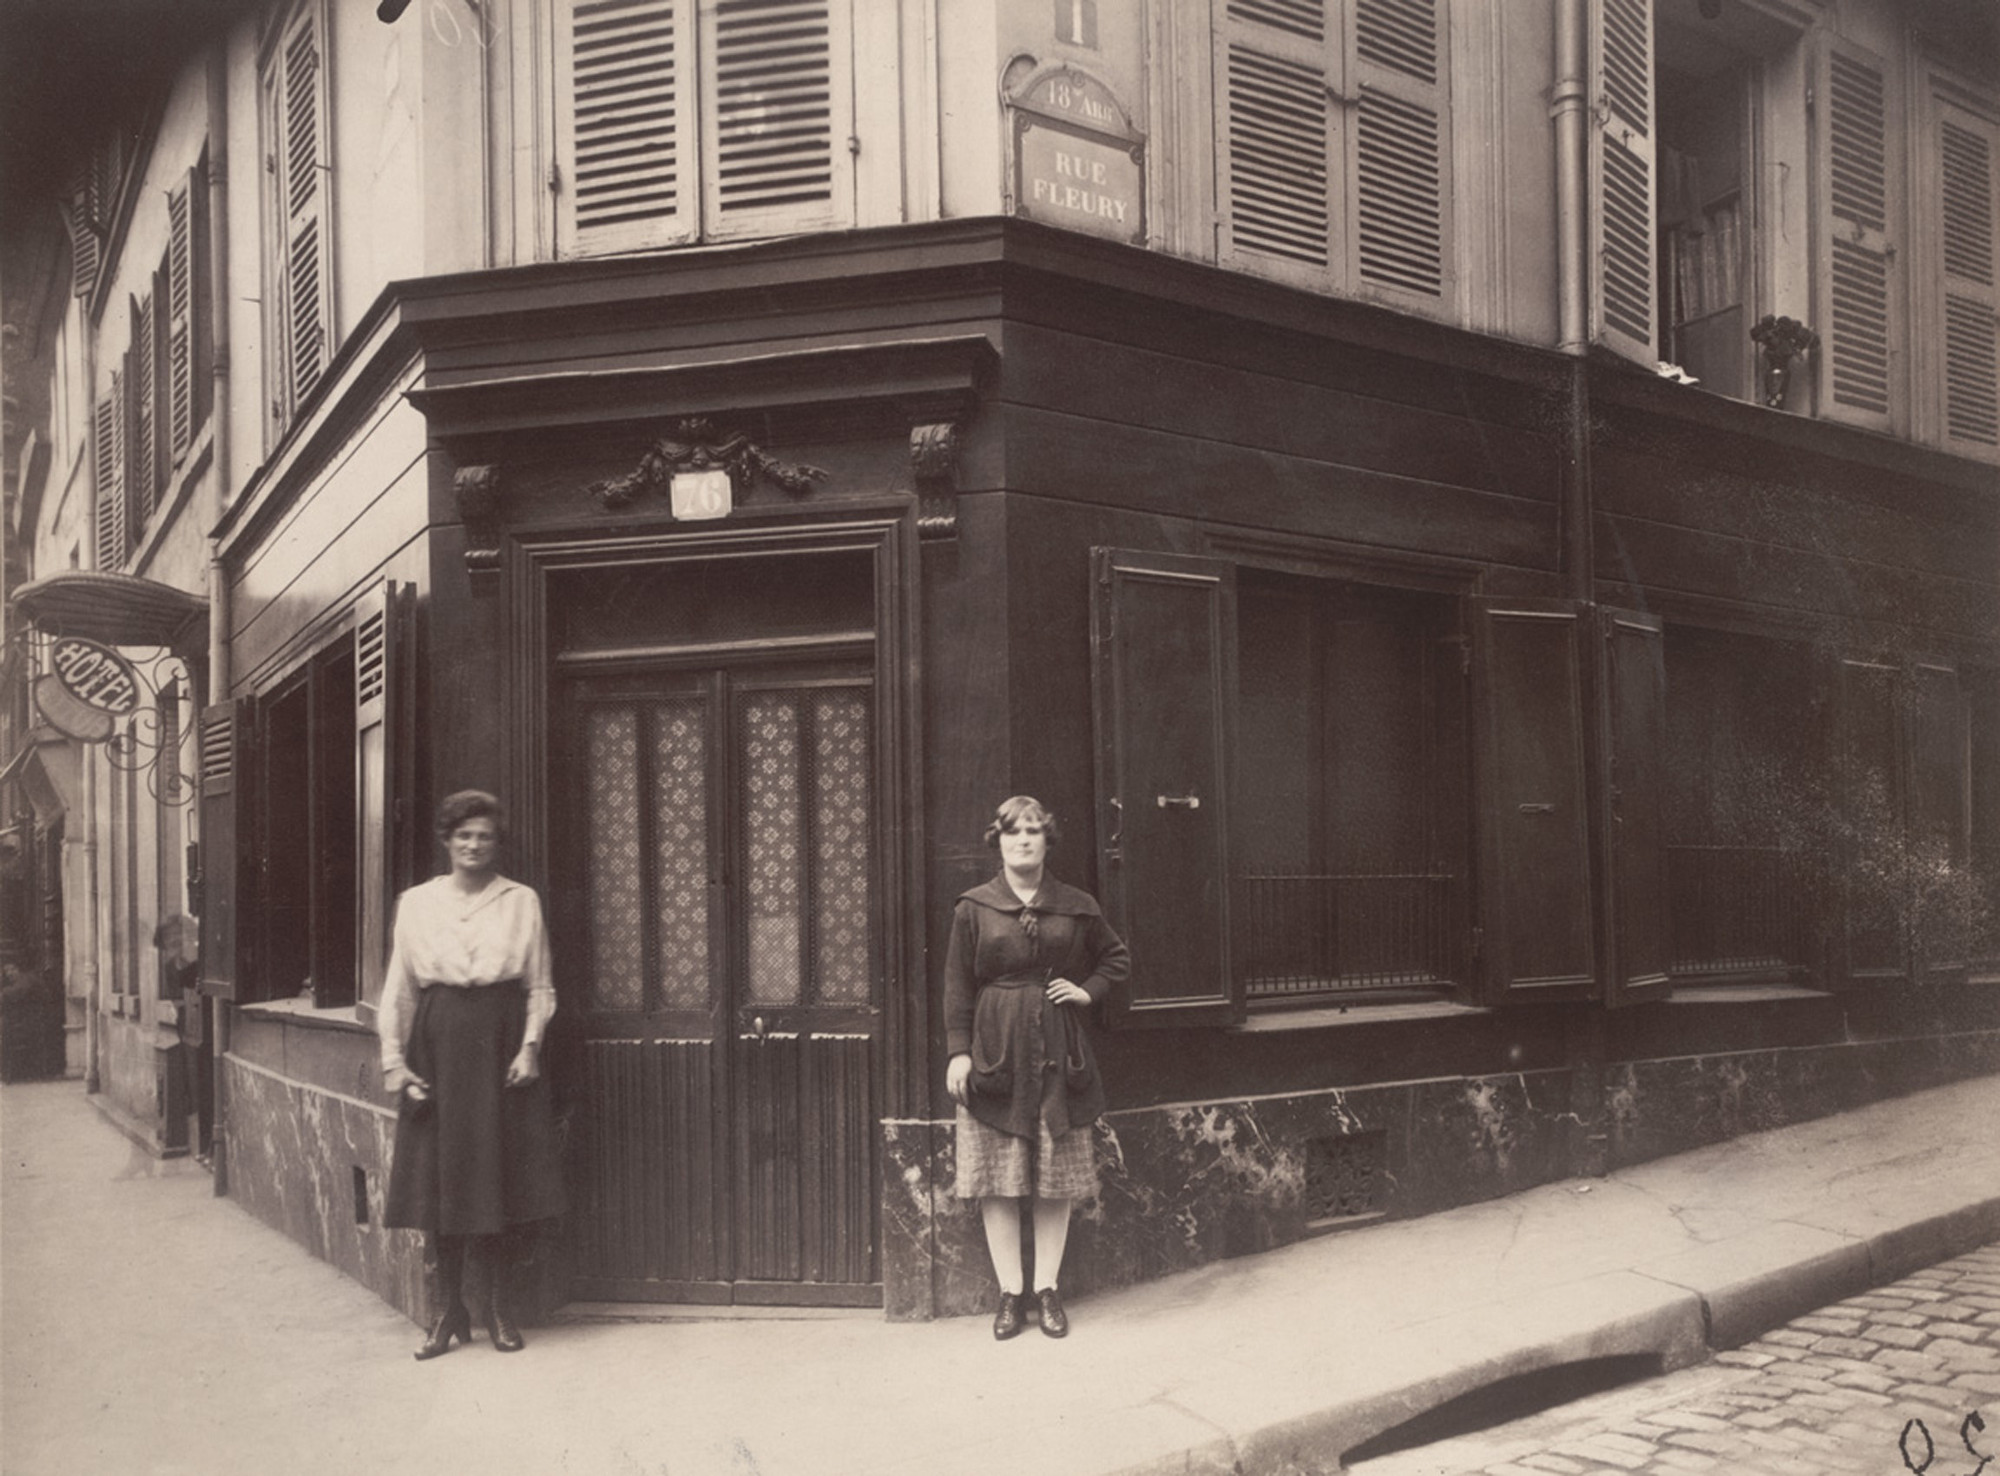 Eugène Atget. Coin, Boulevard de la Chapelle et Rue Fleury 76, 18E. June 1921. Matte albumen silver print, 6 13⁄16 × 9″ (17.3 × 22.9 cm). The Museum of Modern Art, New York. Abbott-Levy Collection. Partial gift of Shirley C. Burden